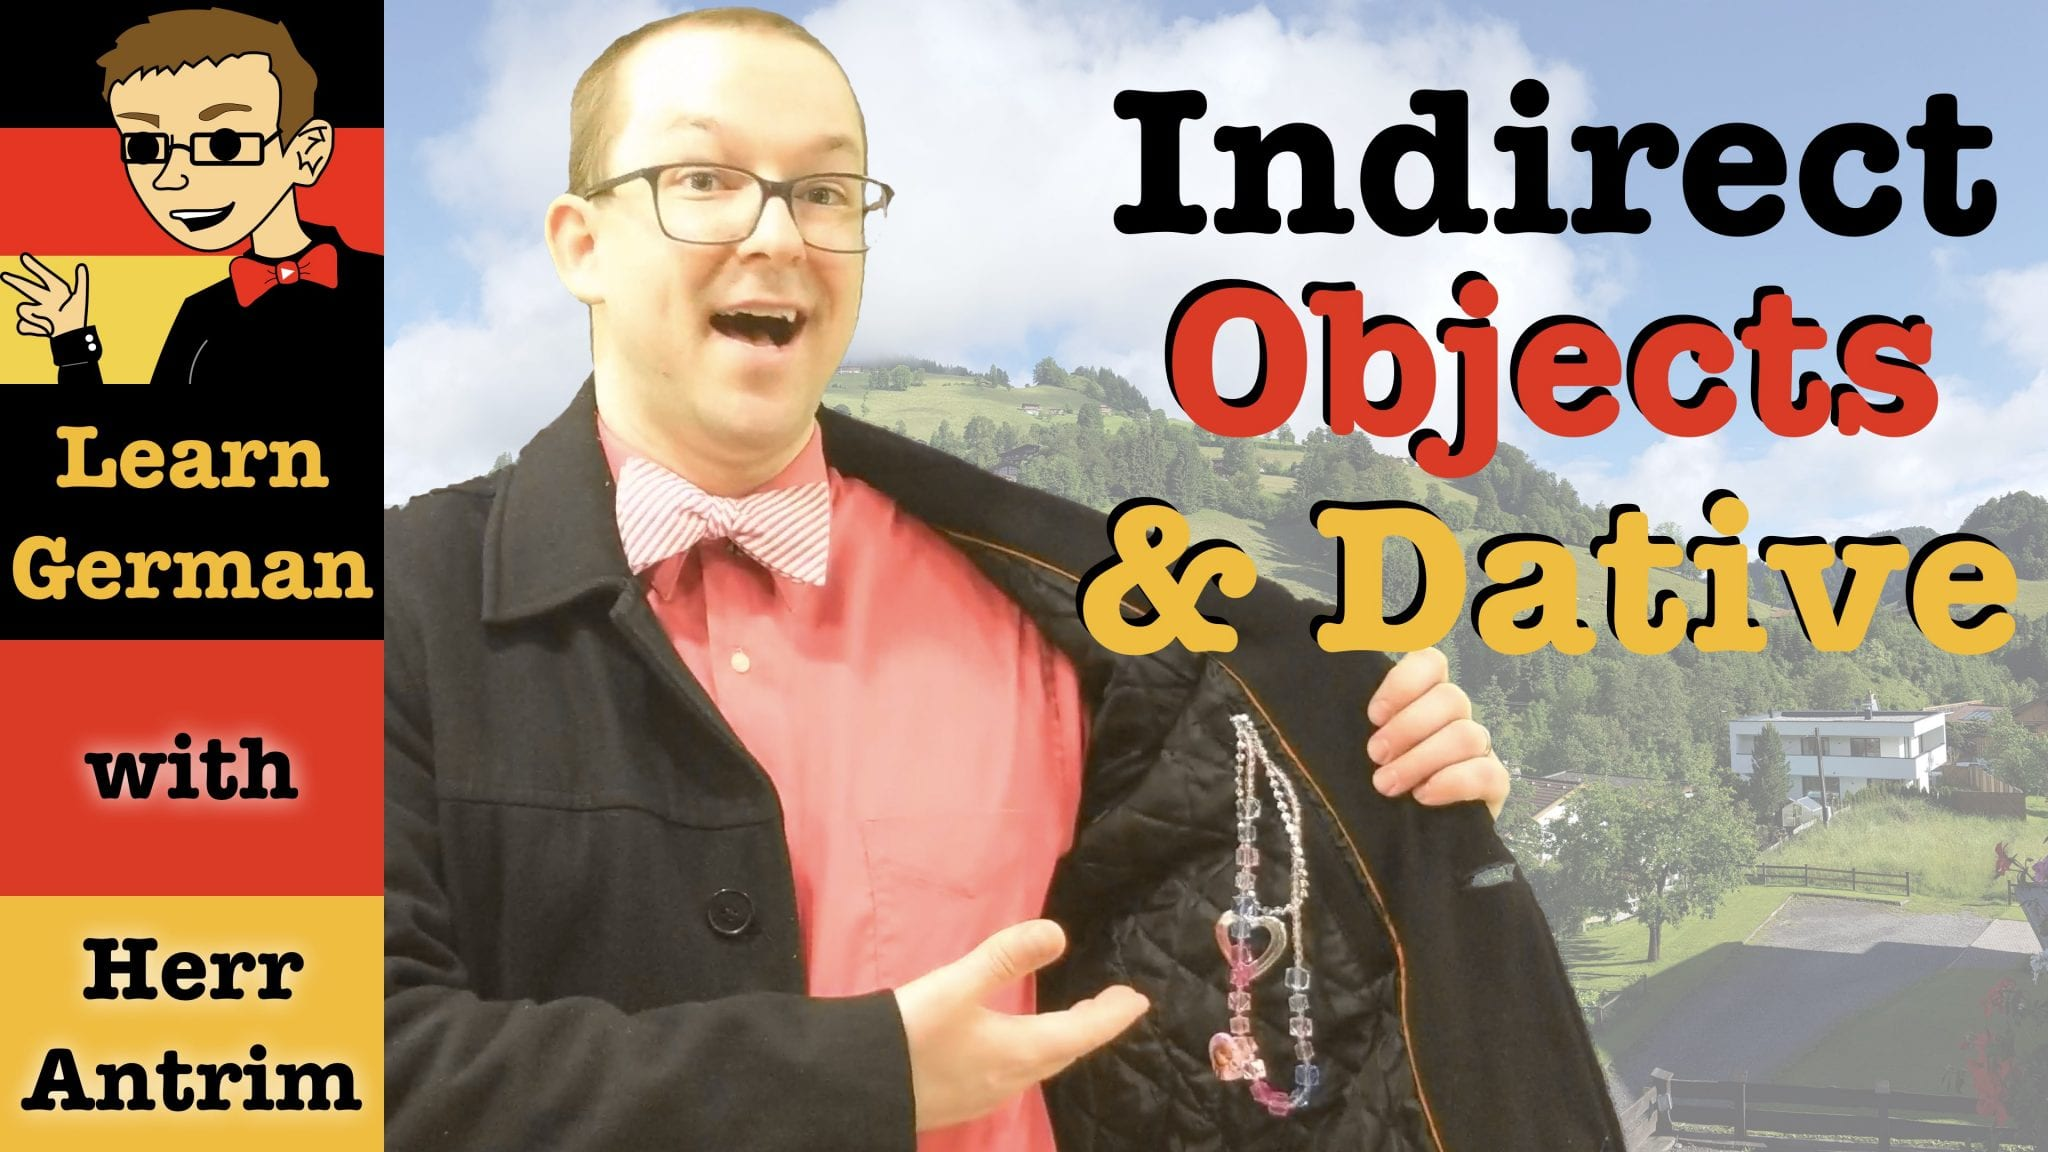 Indirect Objects & the German Dative Case